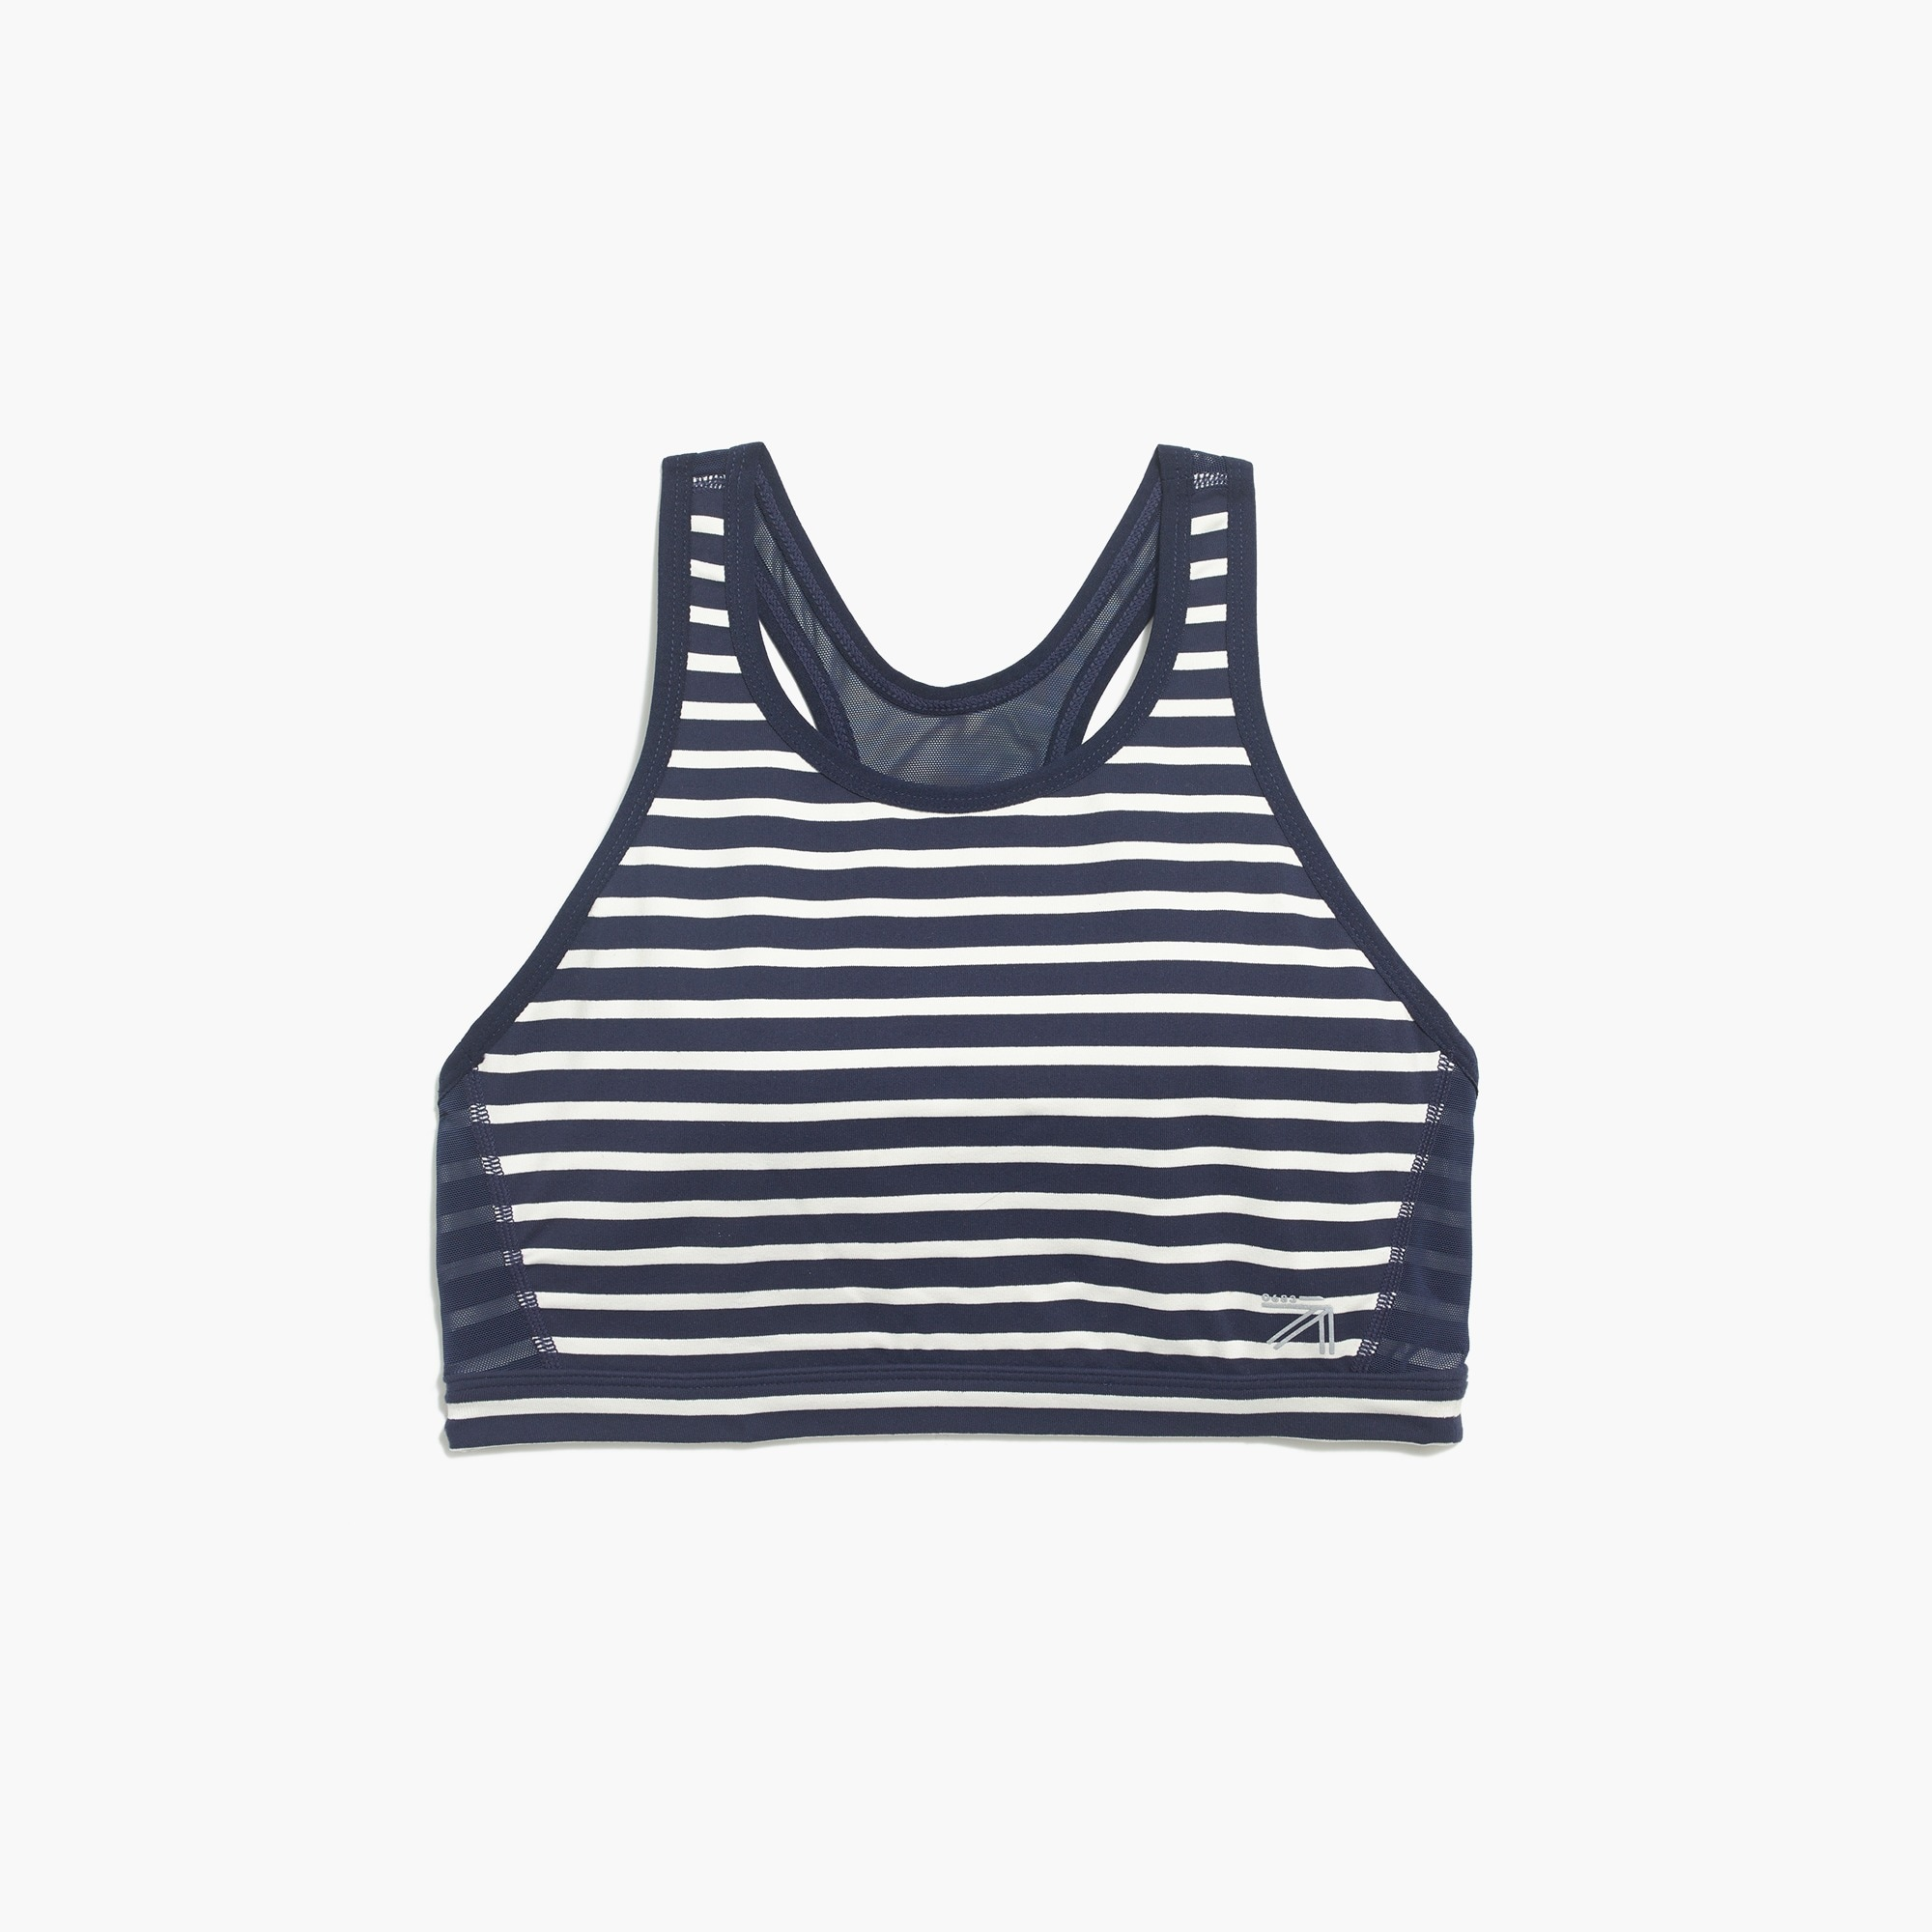 Image 2 for New Balance for J.crew performance mesh-back sports bra in stripe